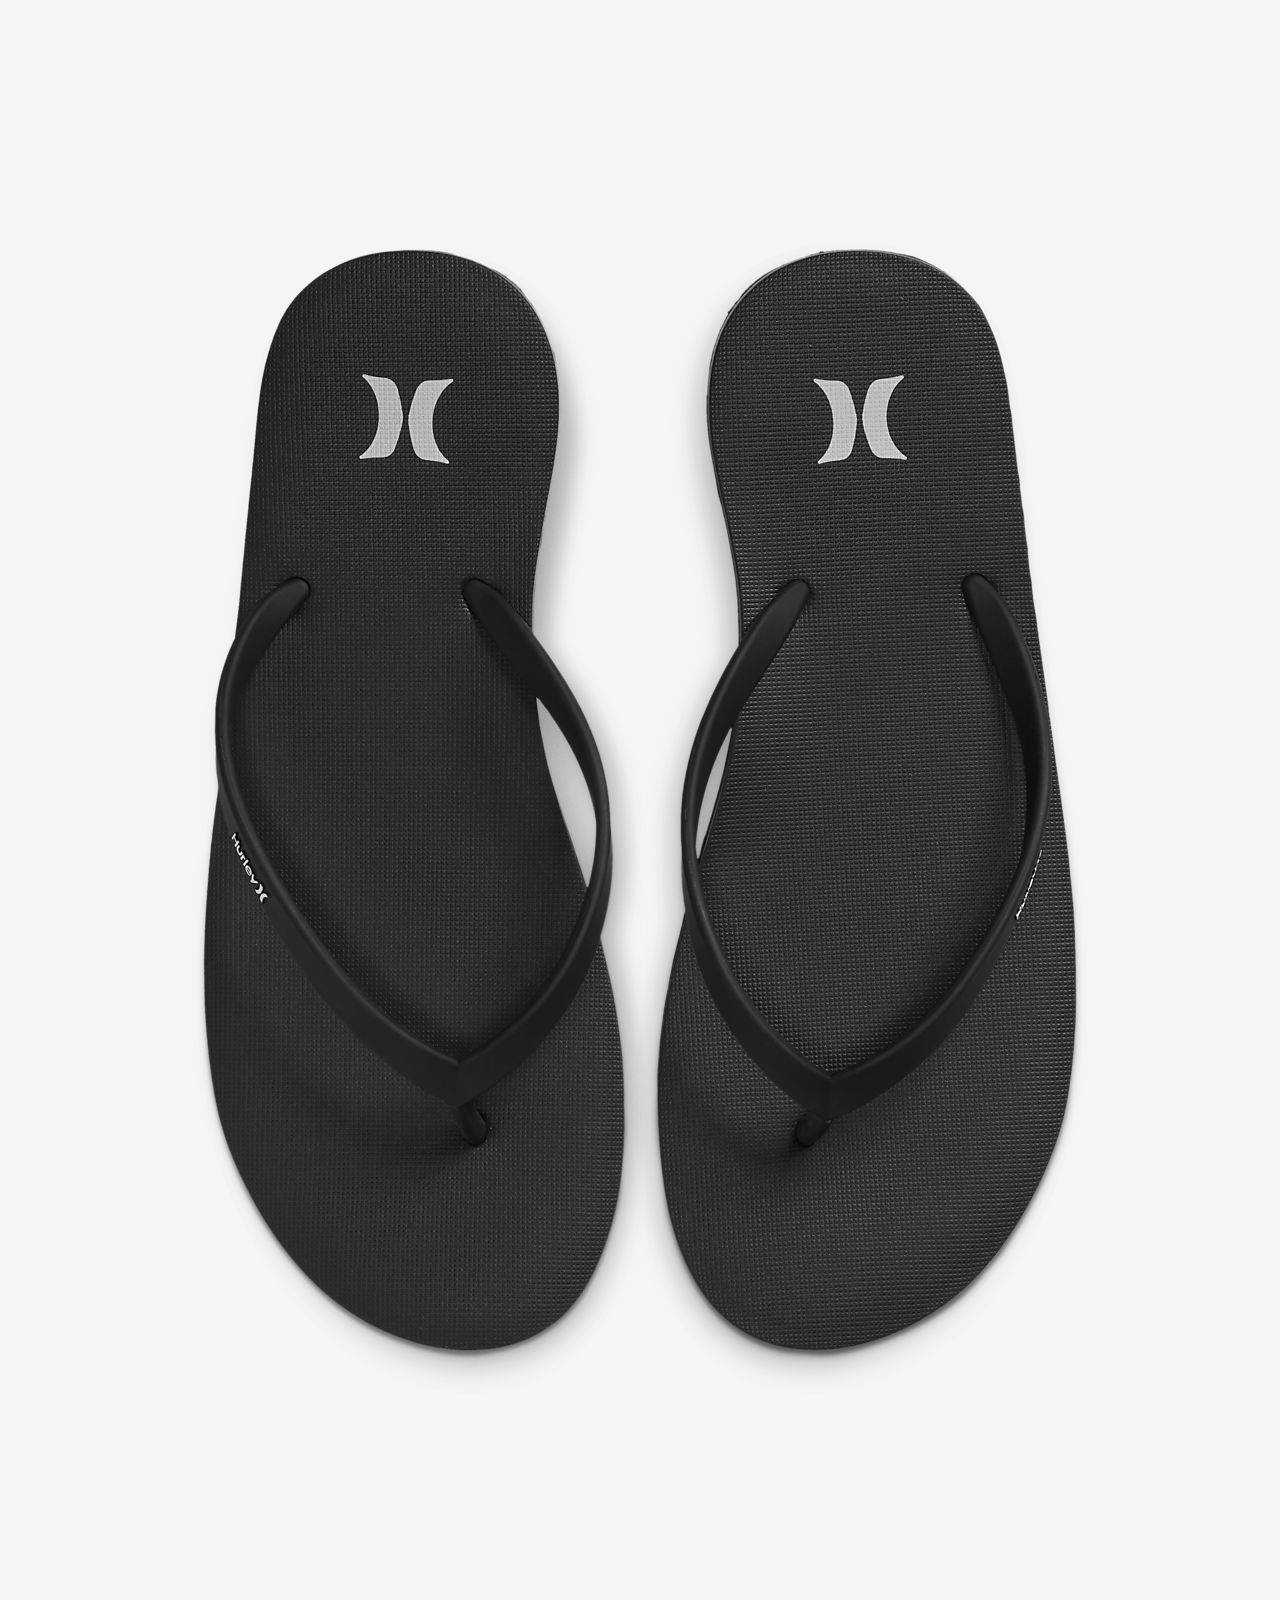 Hurley One And Only Women's Sandals